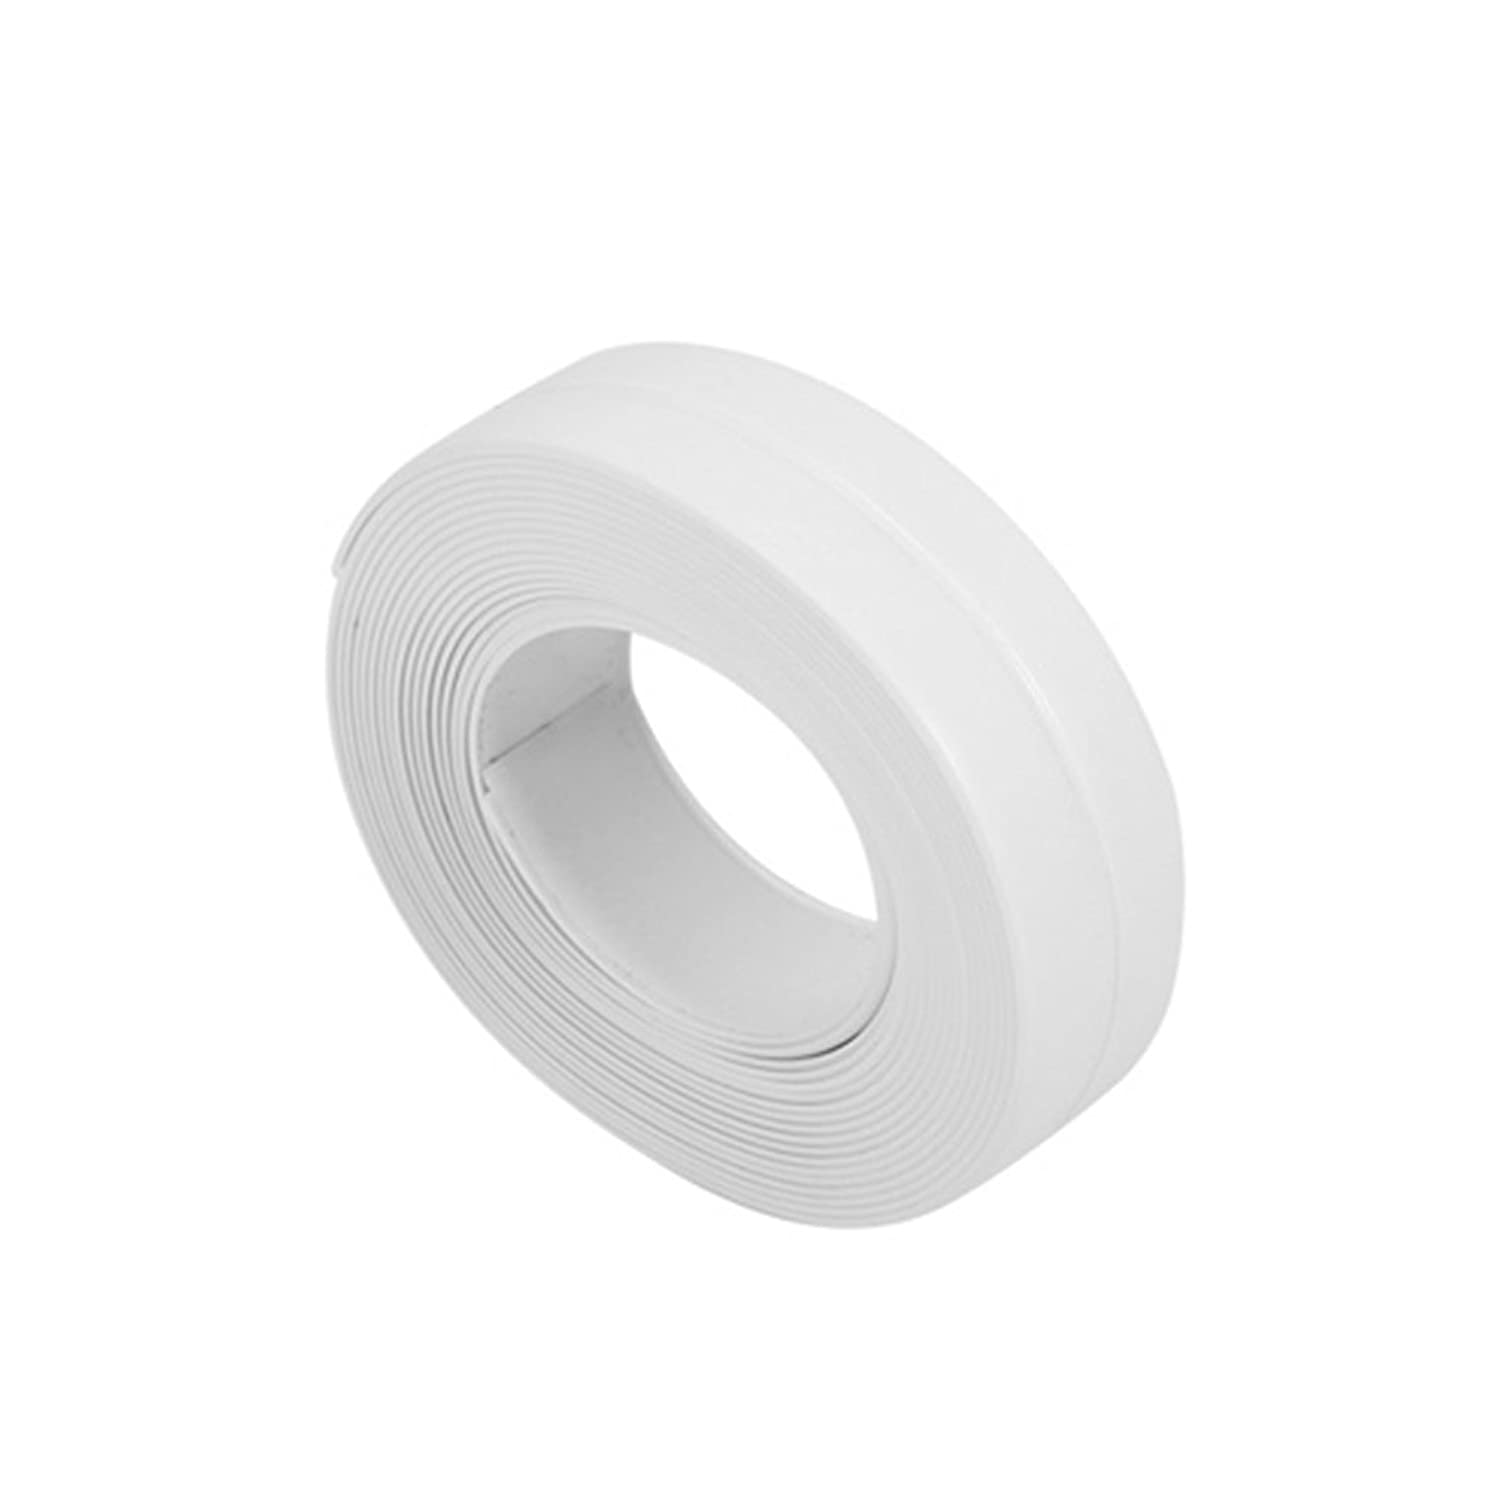 Gilroy Strip Calk Sealing Tape for Tub Wall Kitchen Bathroom, Decorative Trim, Waterproof Mold Bumper PVC Adhesive Tape, Proof Corner Line size 22mm (White)